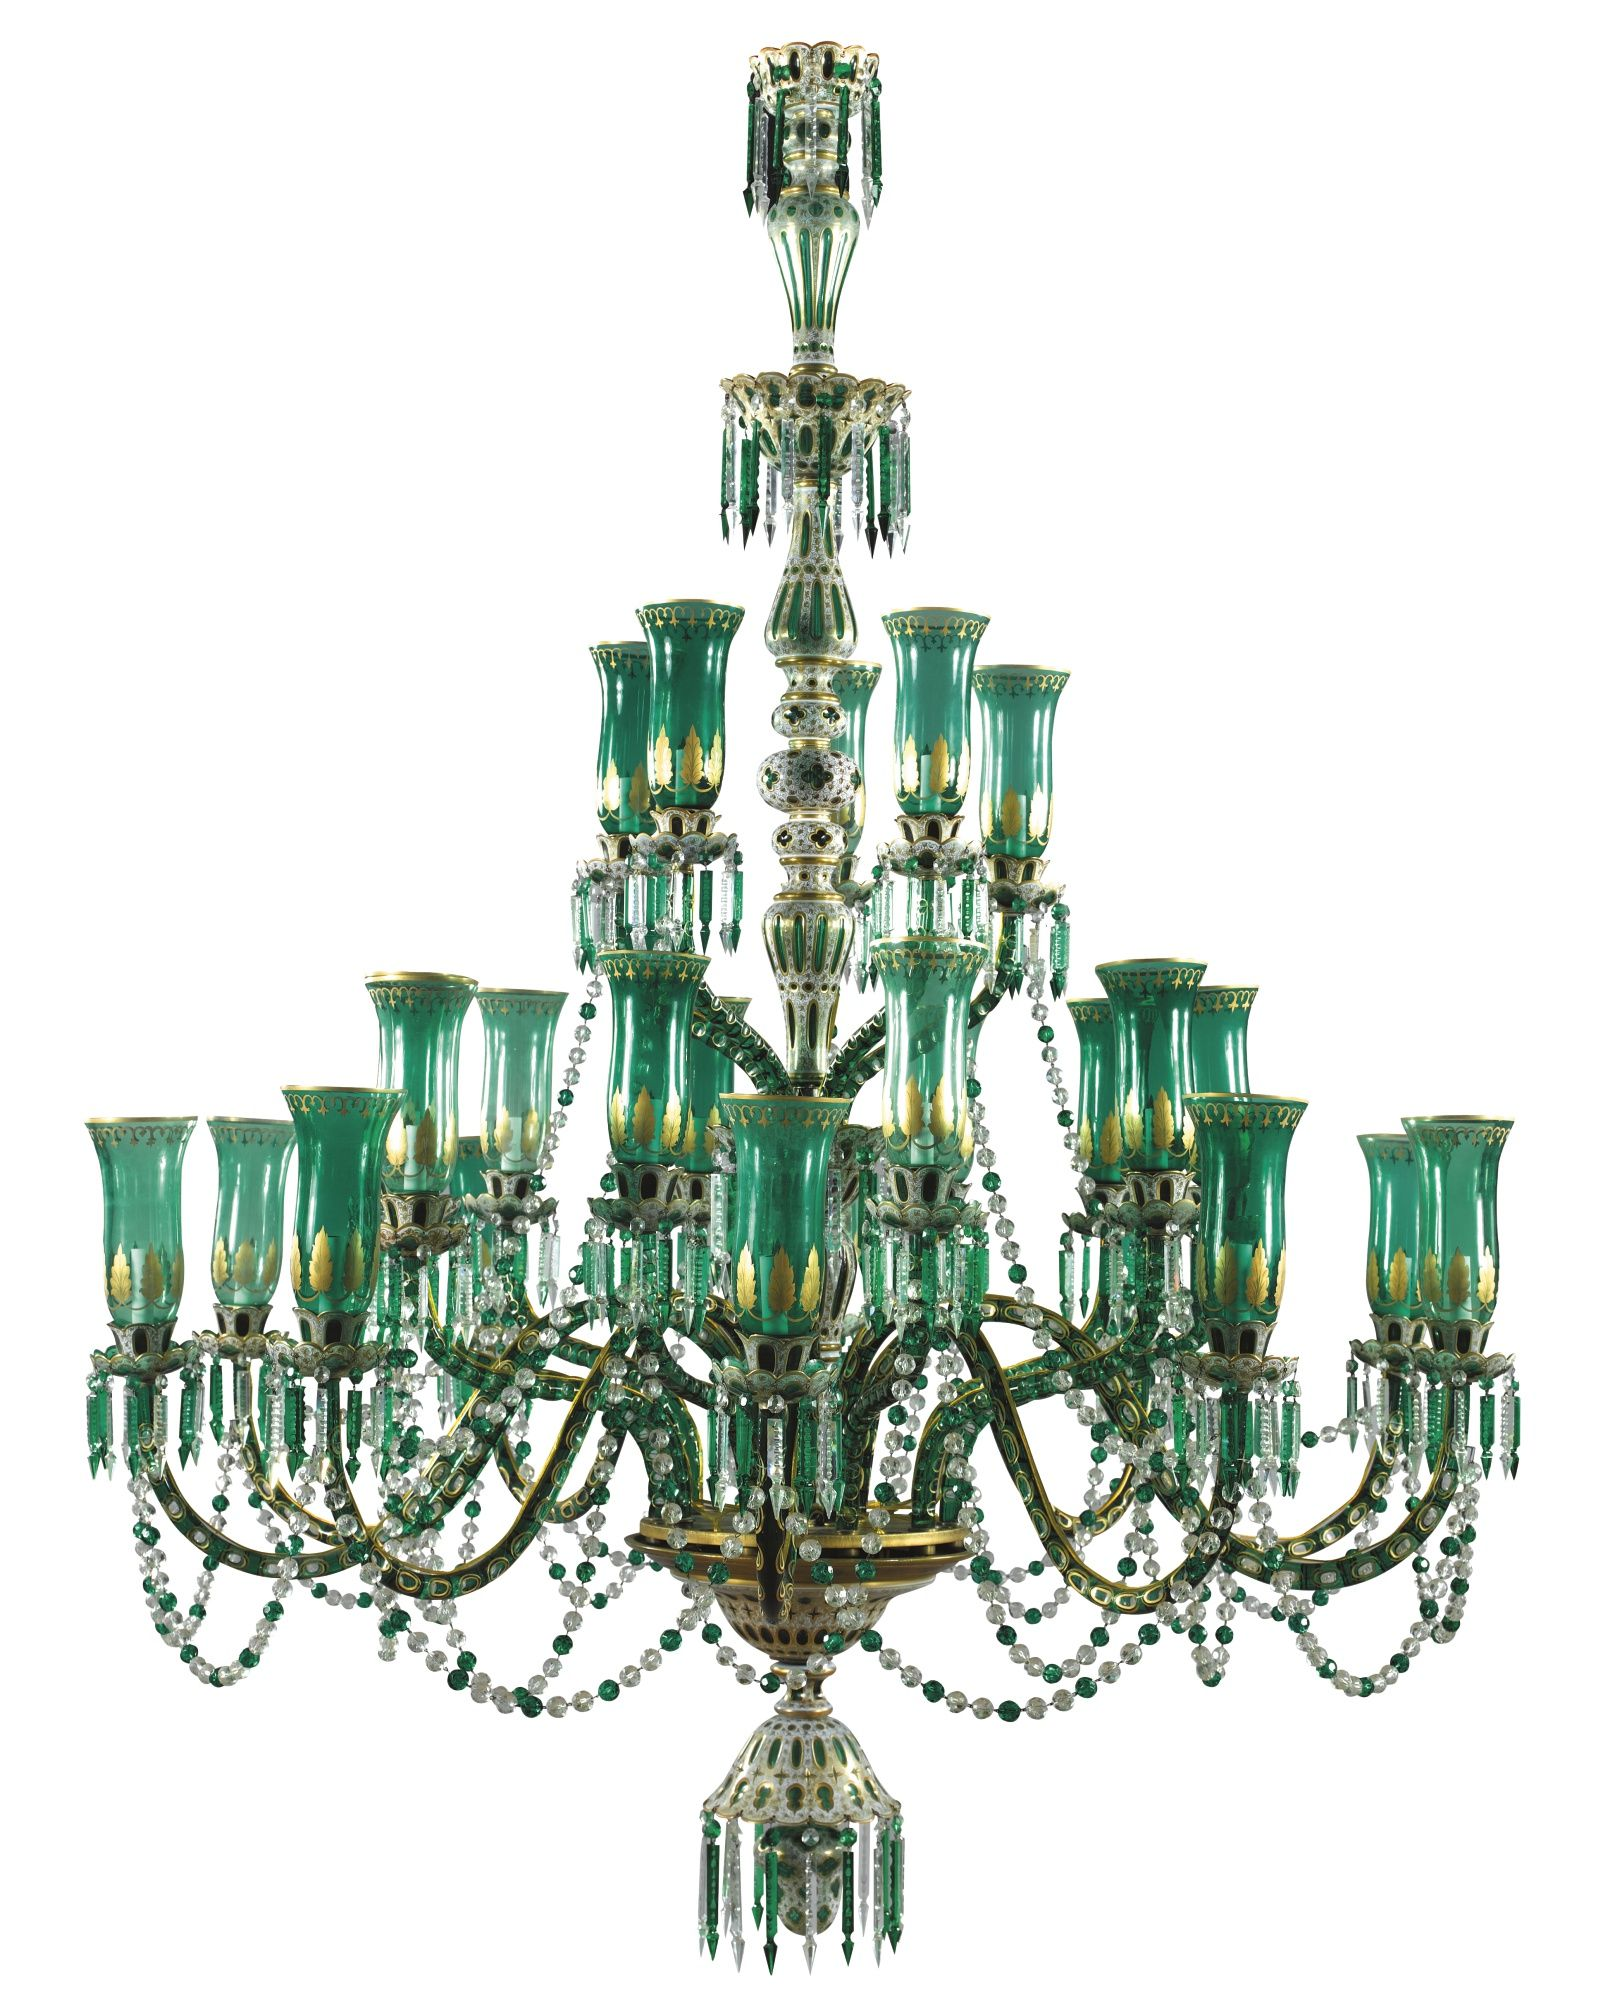 Vintage Crystal Cut Glass Chandelier 5 Arm MURANO Style